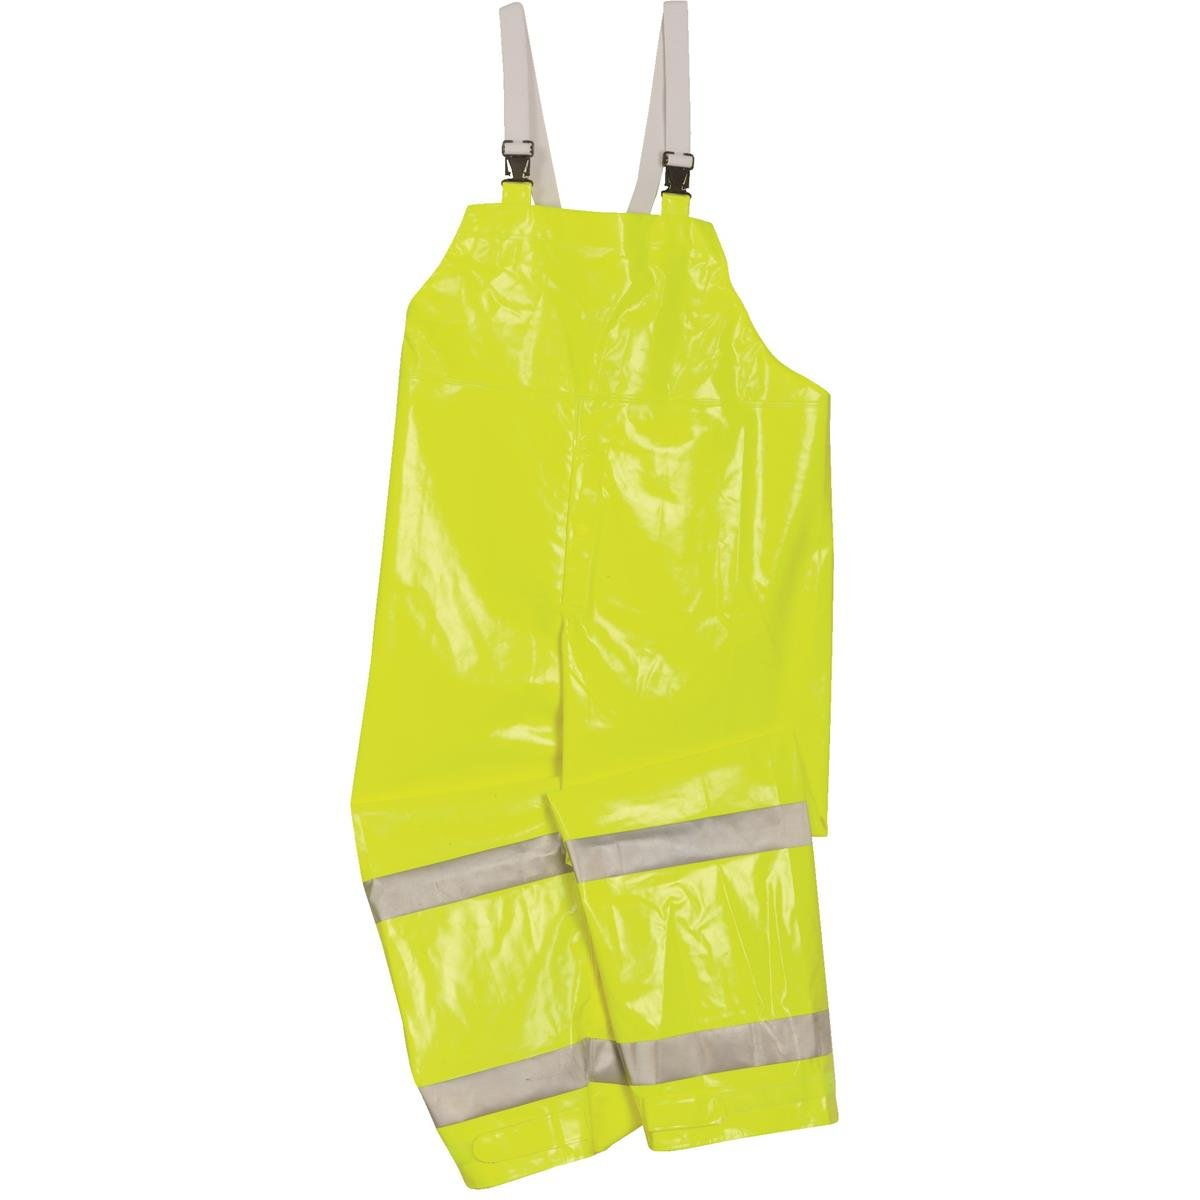 Brite Safety Style 5213 FR Safety Raingear | Hi Vis Rain Bib Overall | Waterproof | Flame Resistant | ANSI 107 Class E Compliant (Medium, Hi Vis Yellow) by Brite Safety (Image #1)